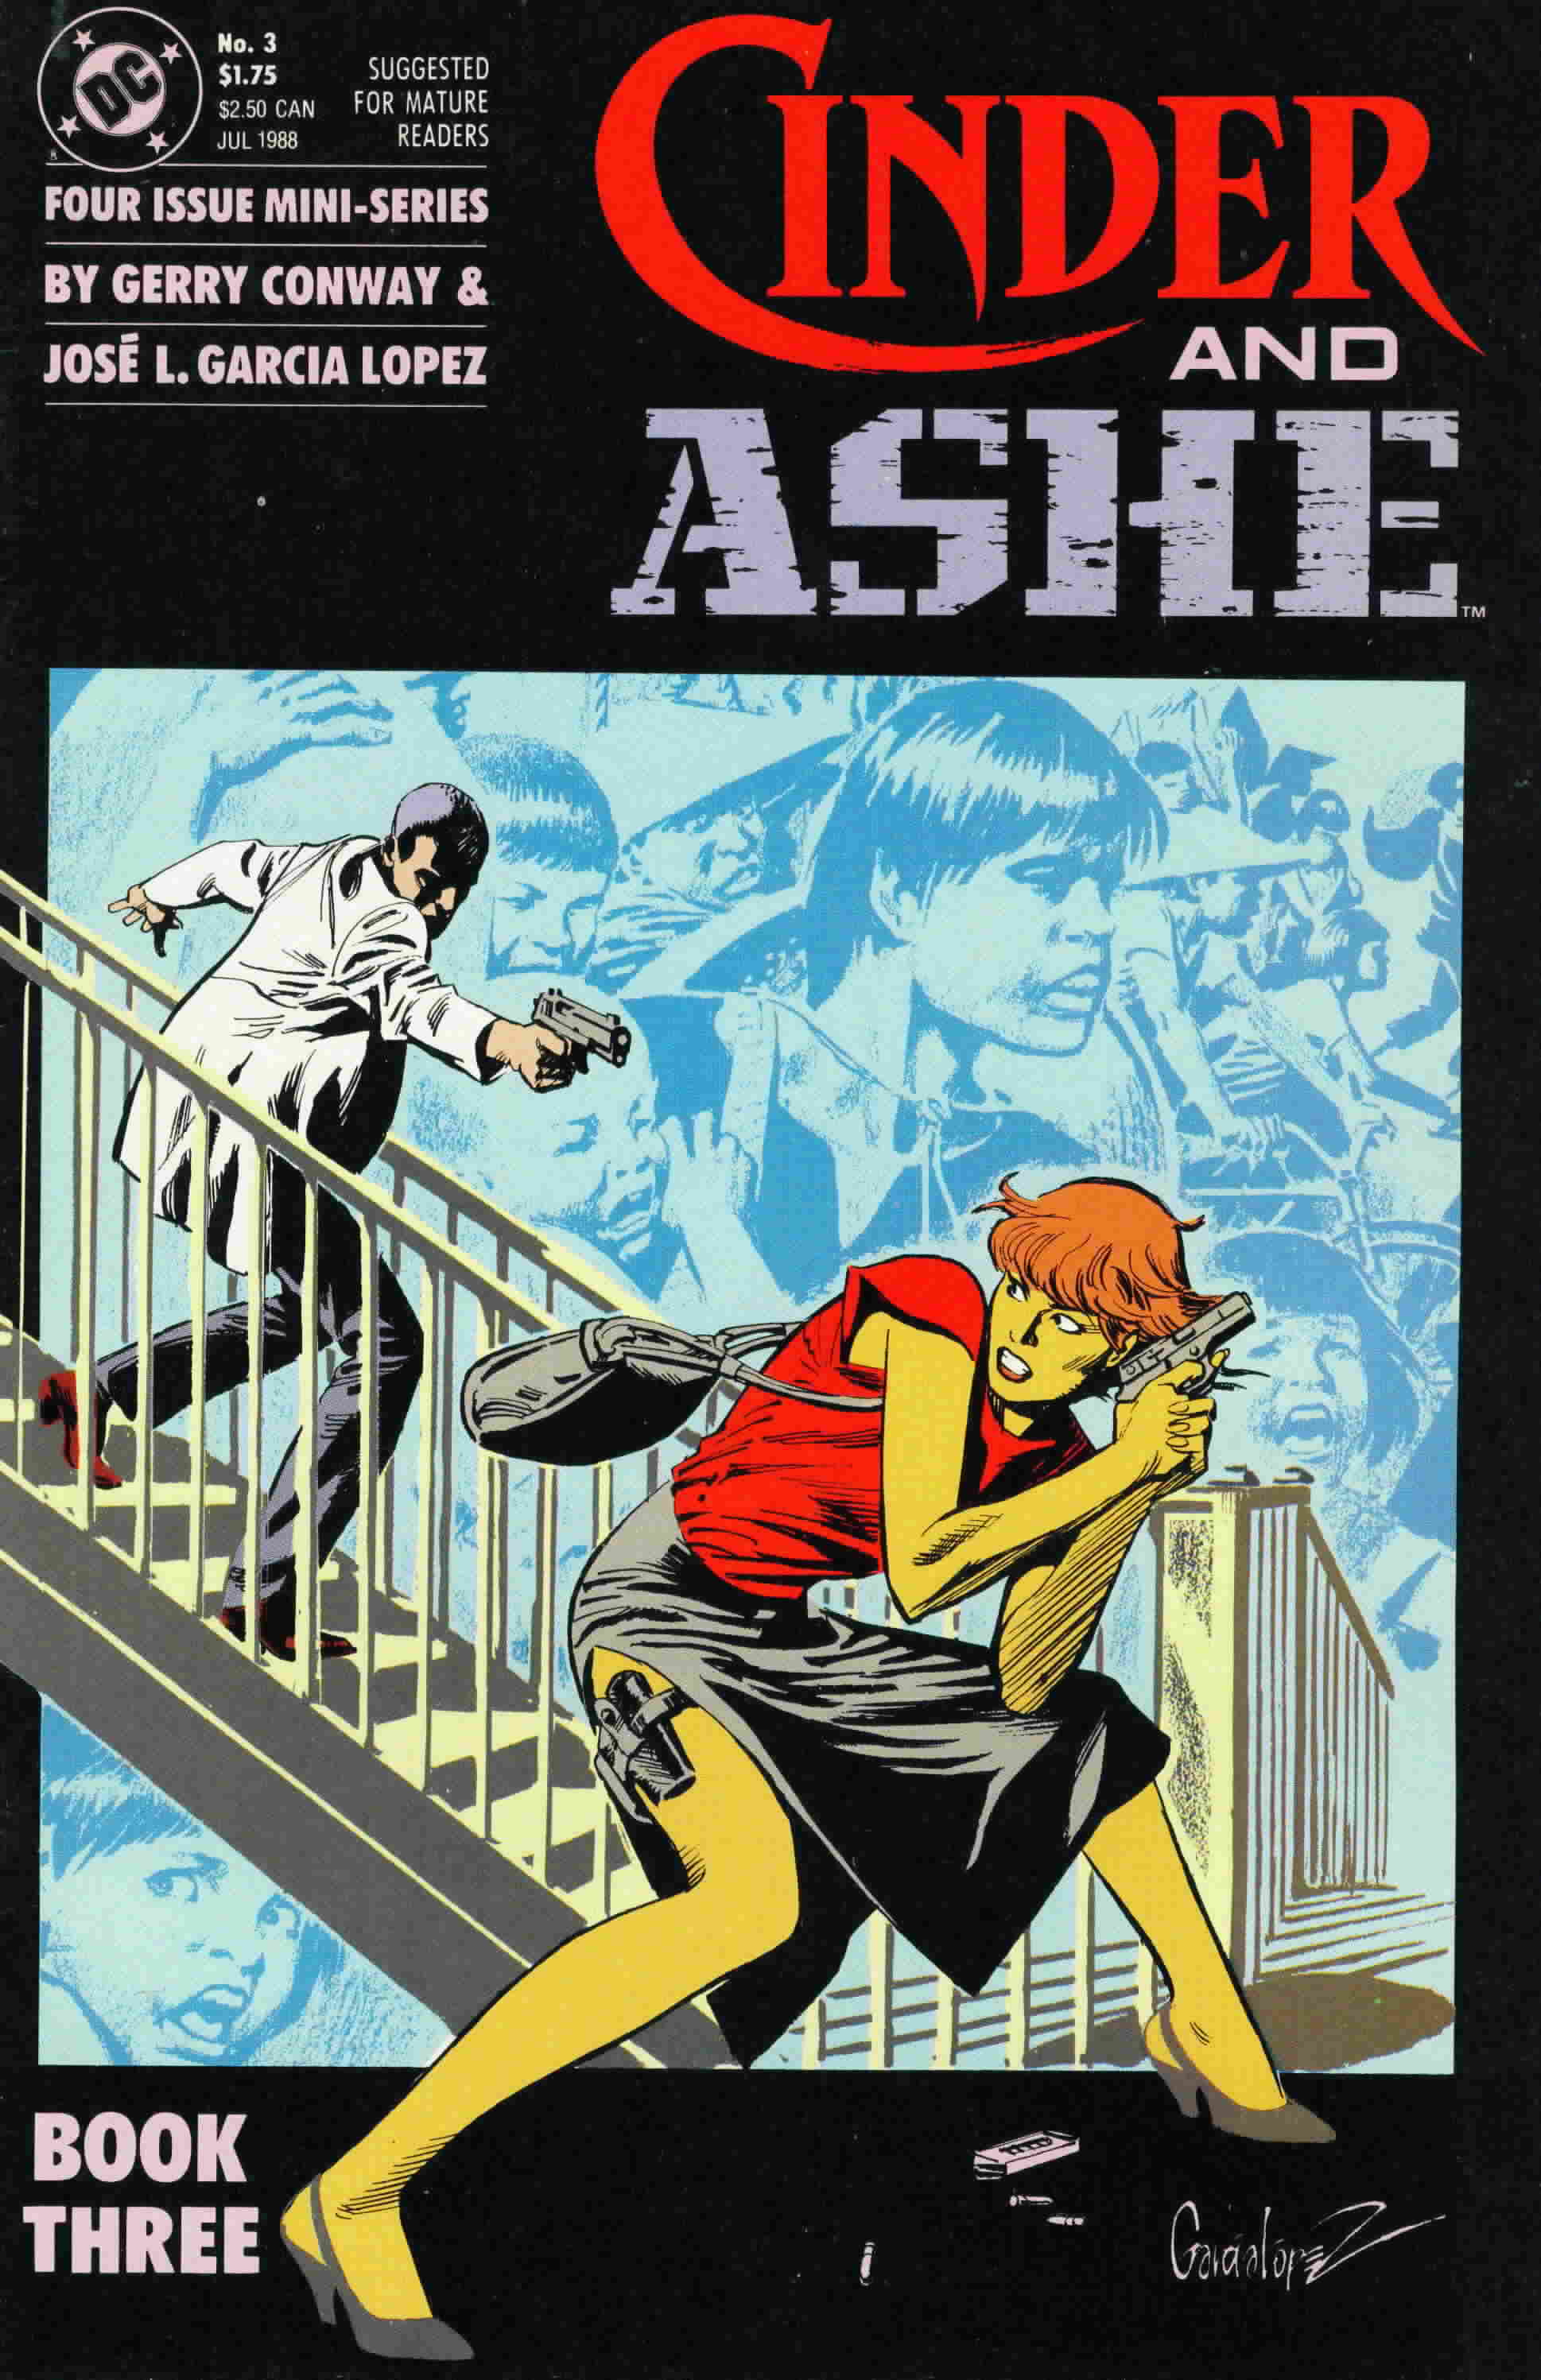 Read online Cinder and Ashe comic -  Issue #3 - 1